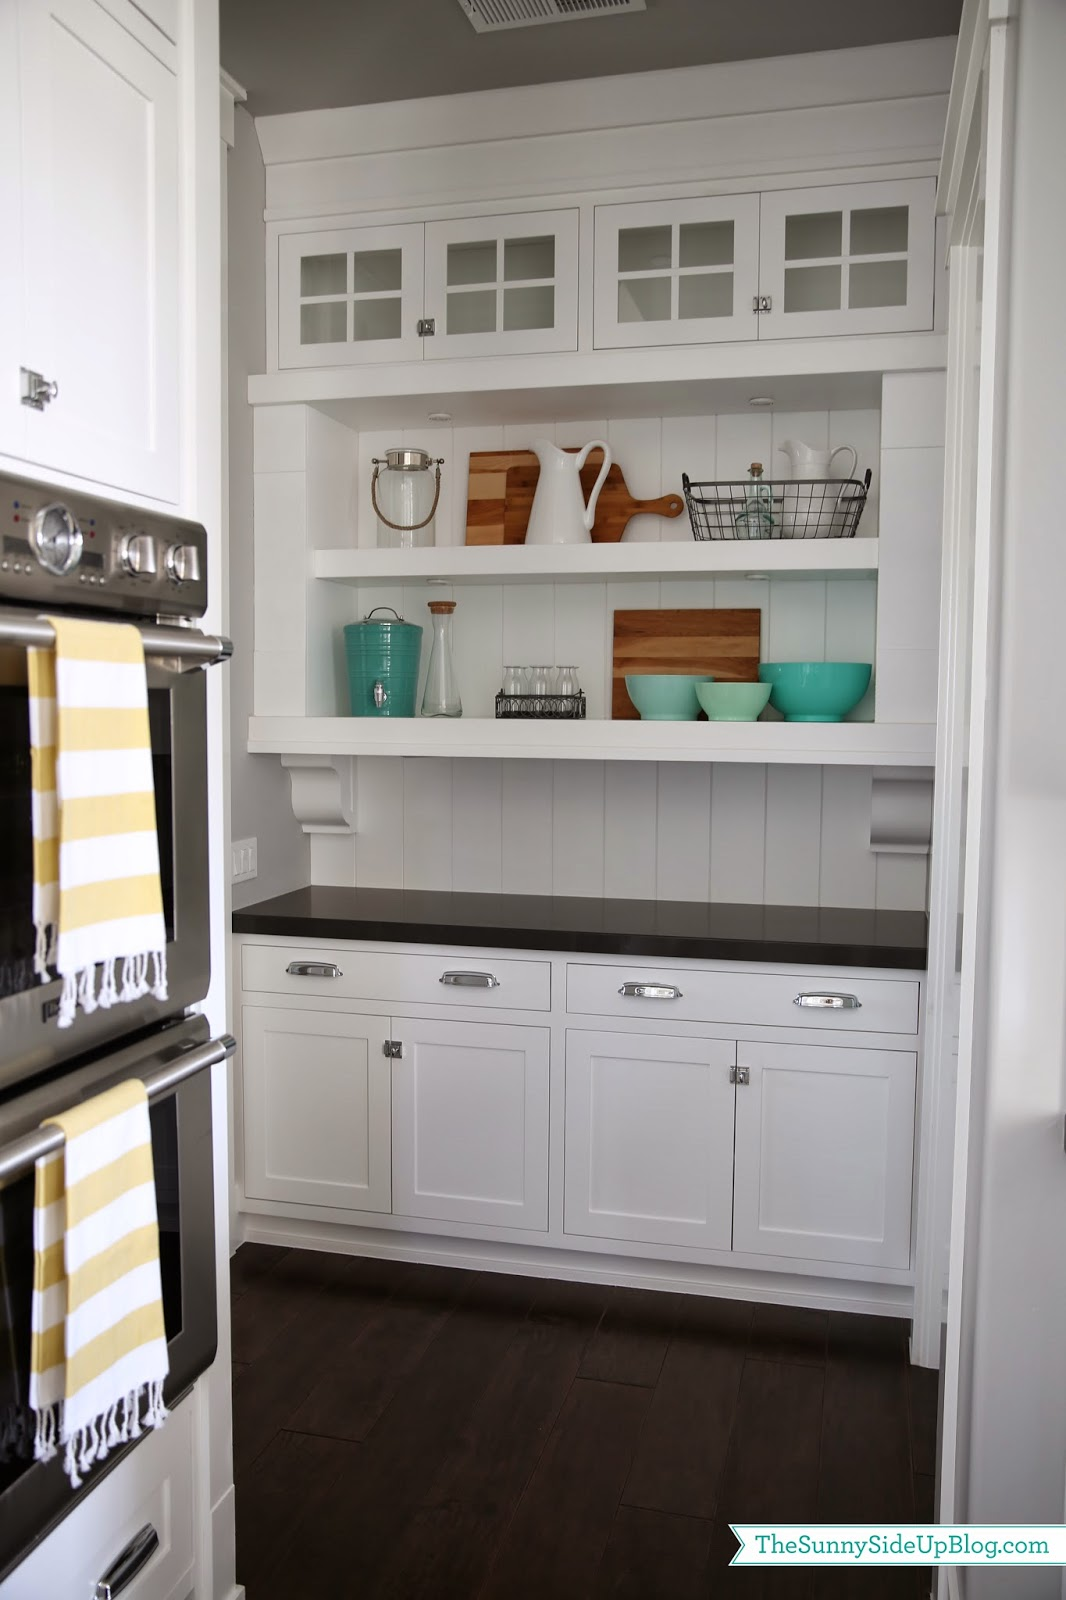 Butler S Pantry Shelves Decorated The Sunny Side Up Blog